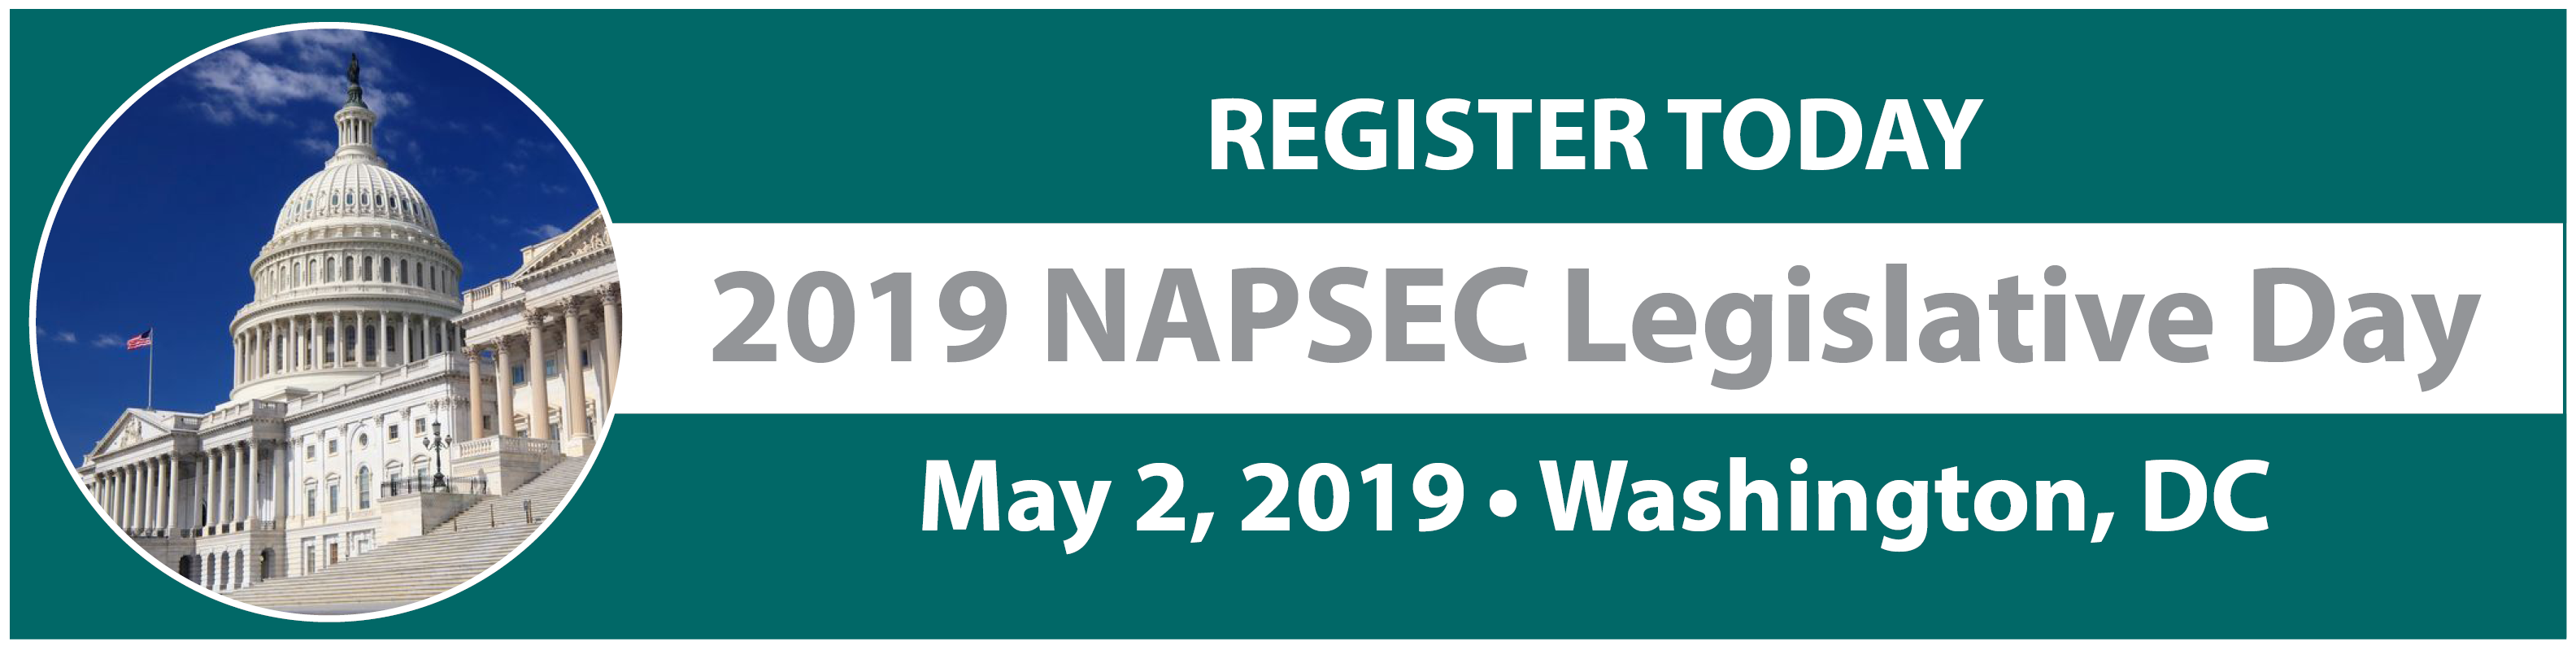 Register for the 2019 NAPSEC Legislative Day Today